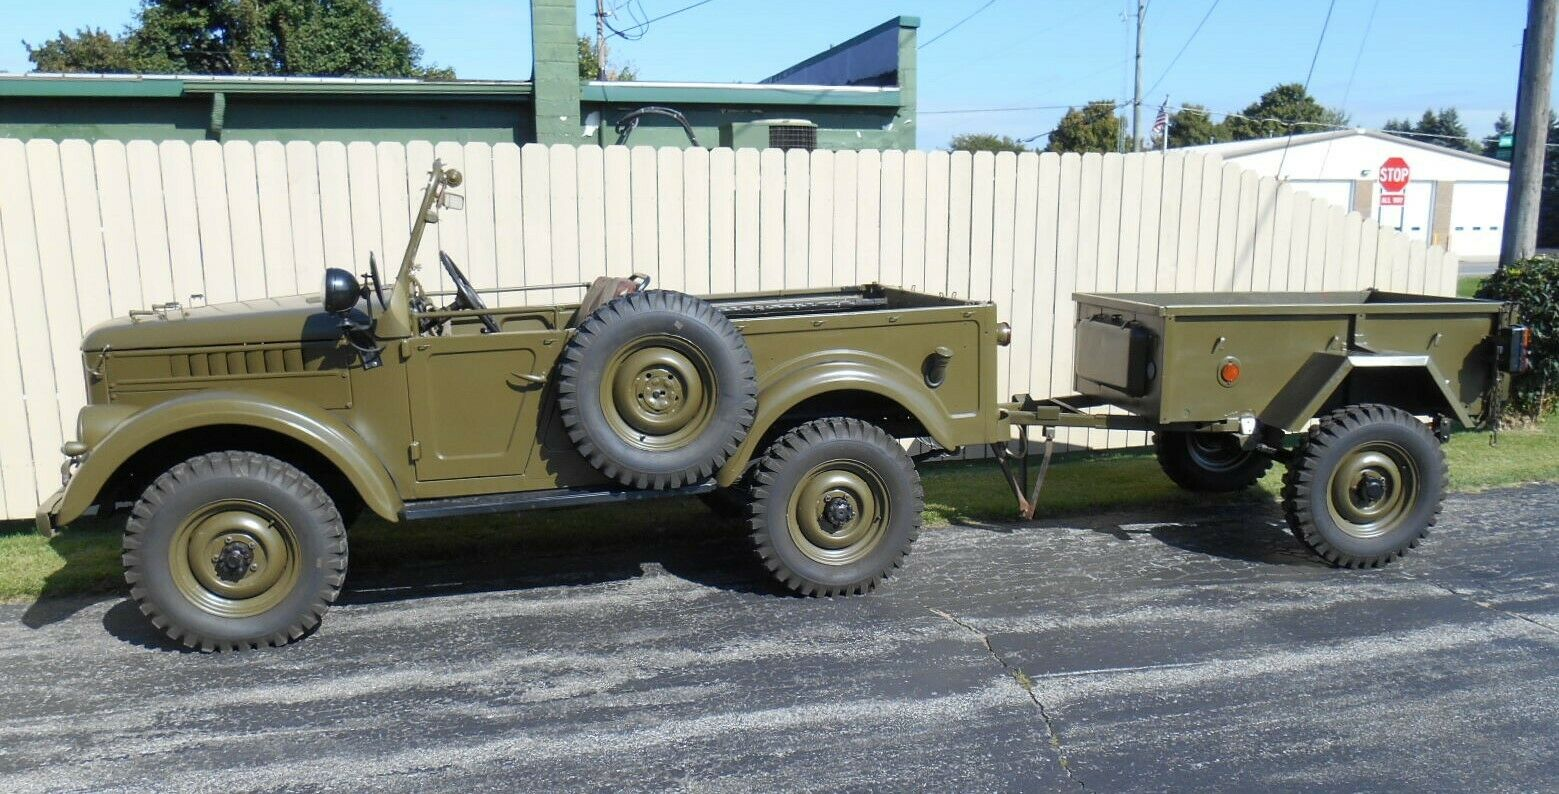 Rare 1963 GAZ 69 Military Troop Hauler And Trailer For Sale